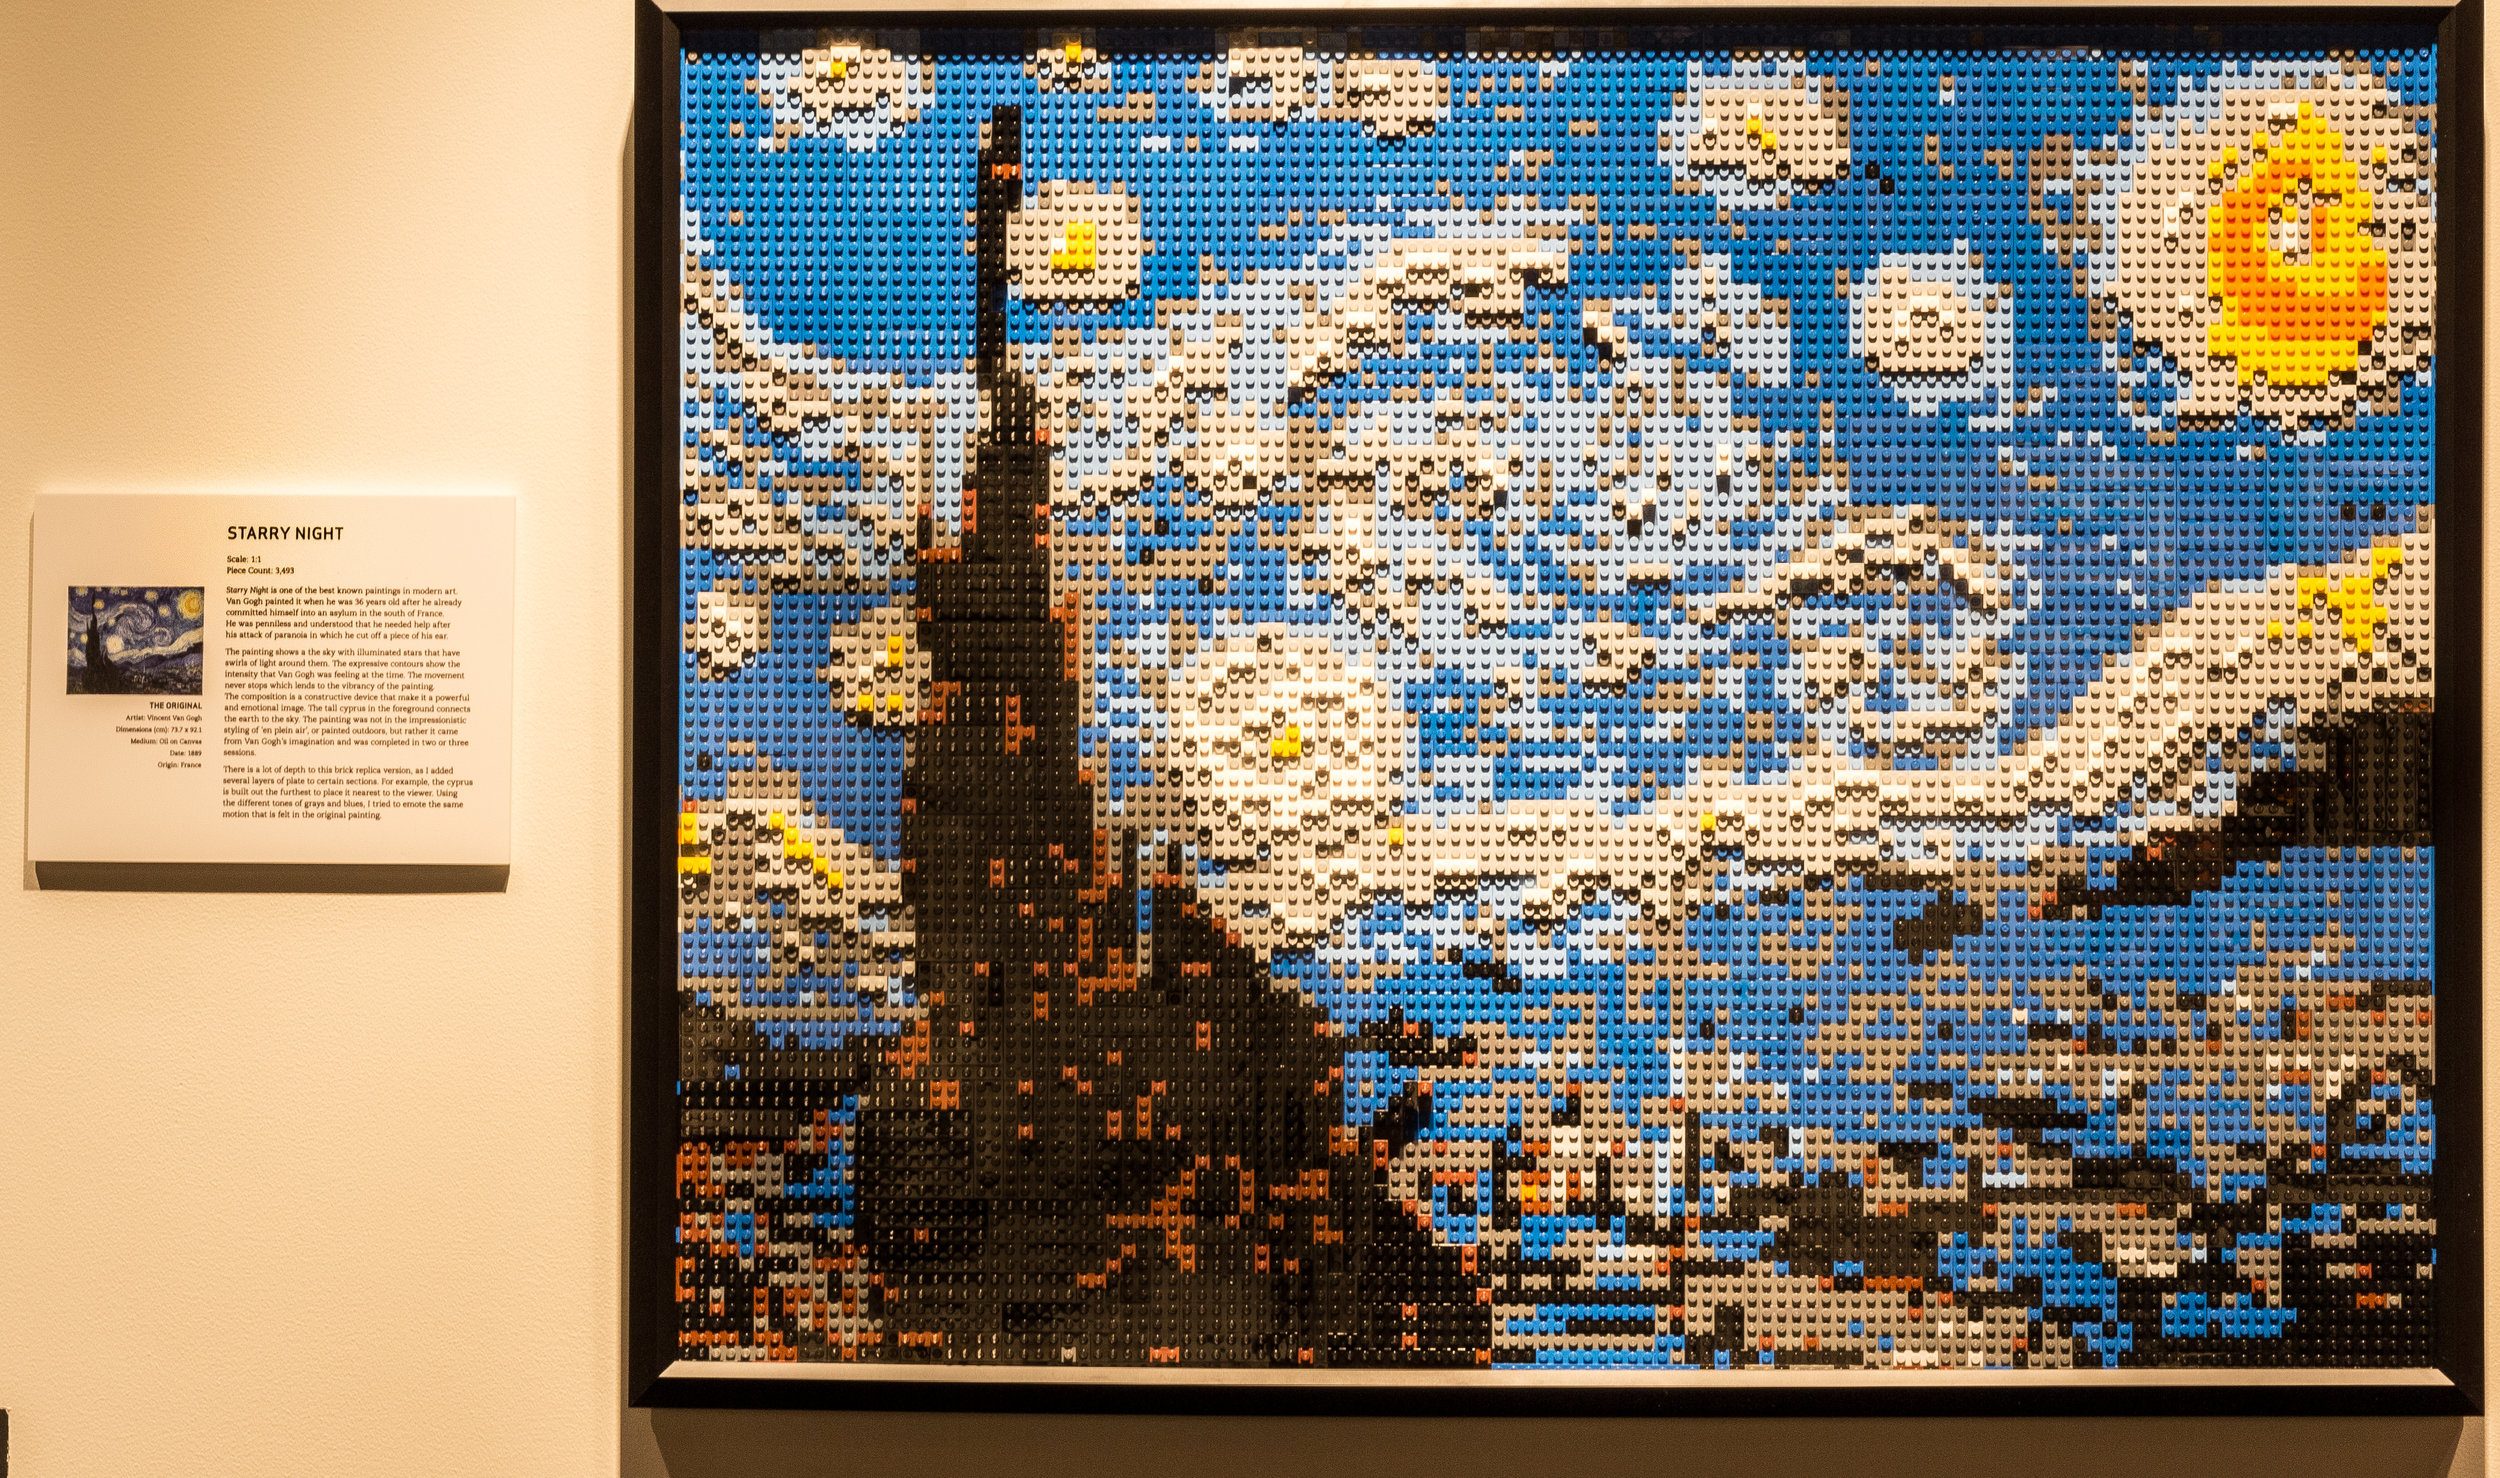 Starry Night The Art of The Brick